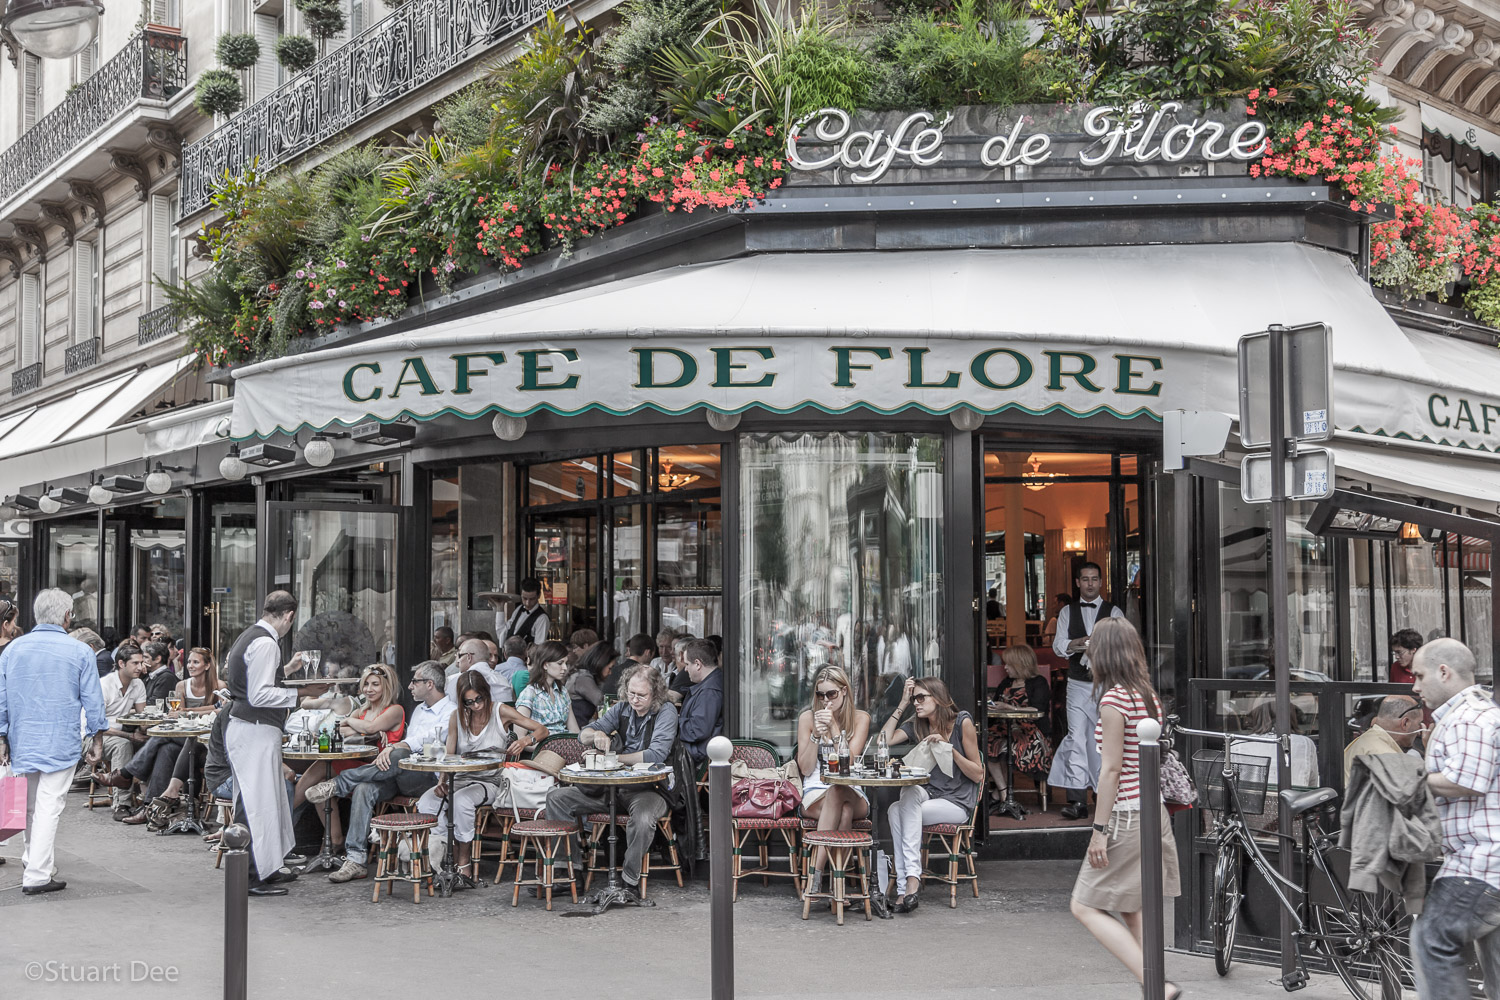 Cafe de Flore, Saint-Germain-des-Pres, Left Bank, Paris, France. 